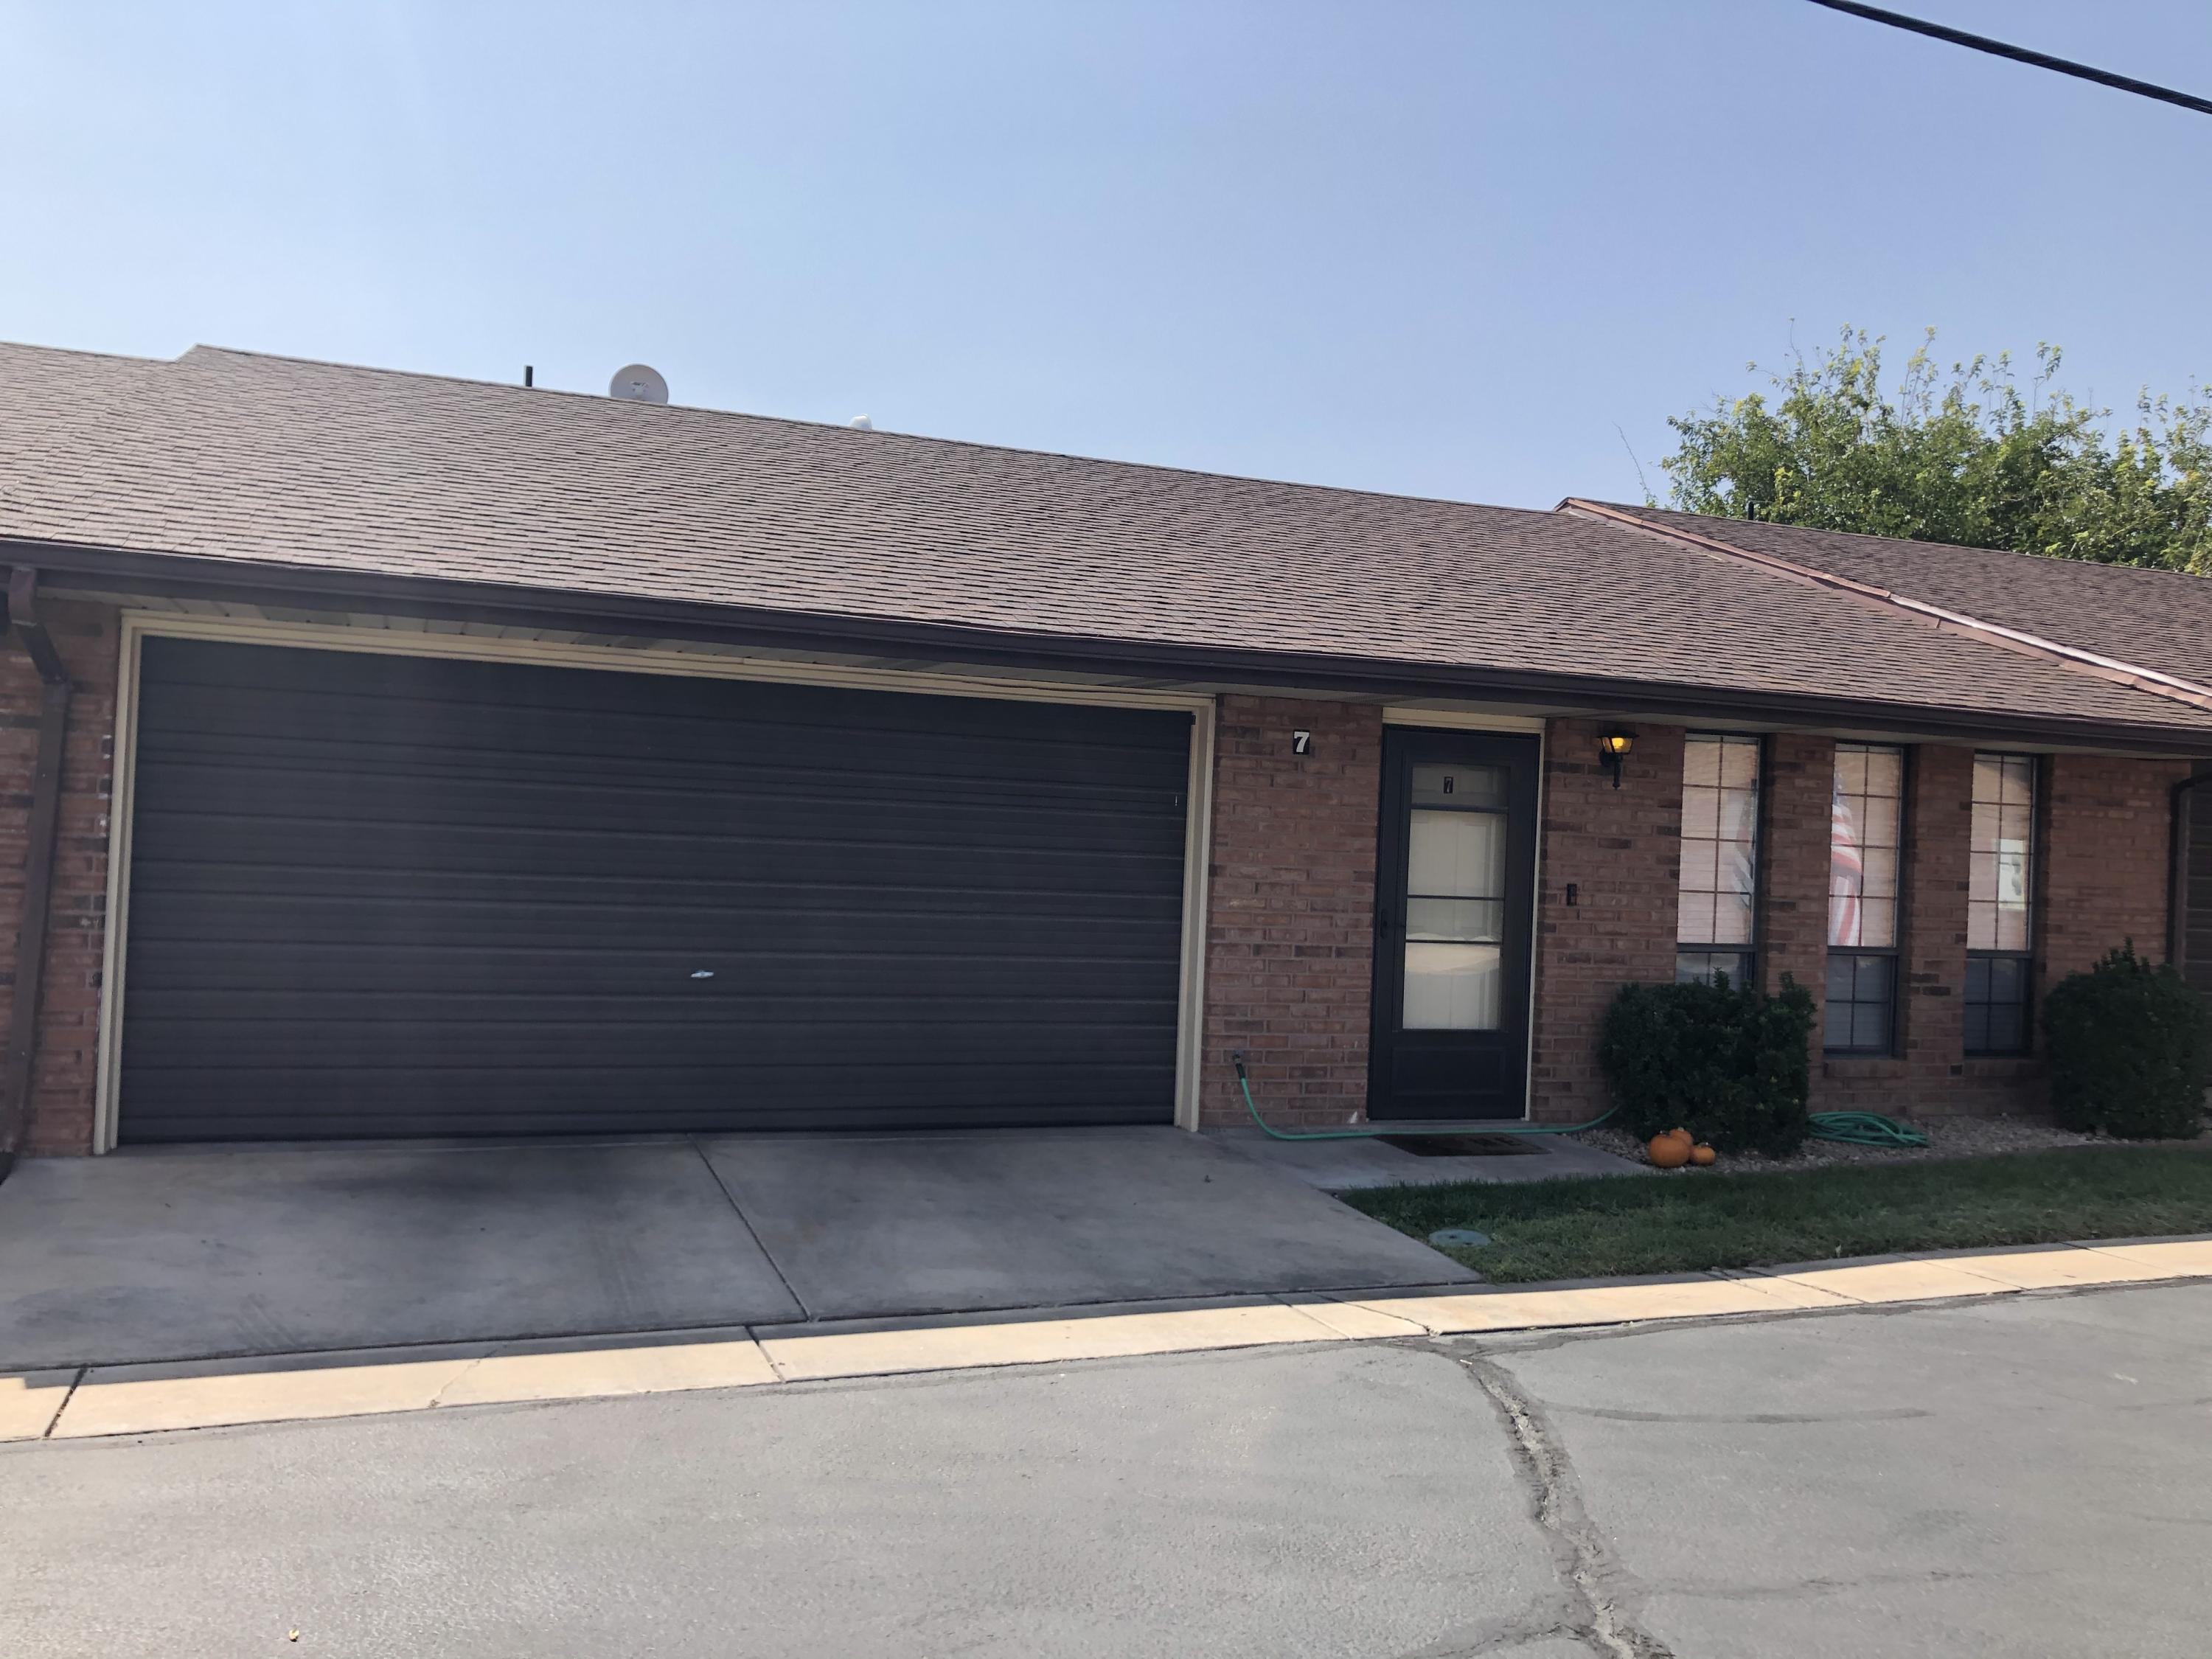 55 W 400 S Unit 7, St George Ut 84770